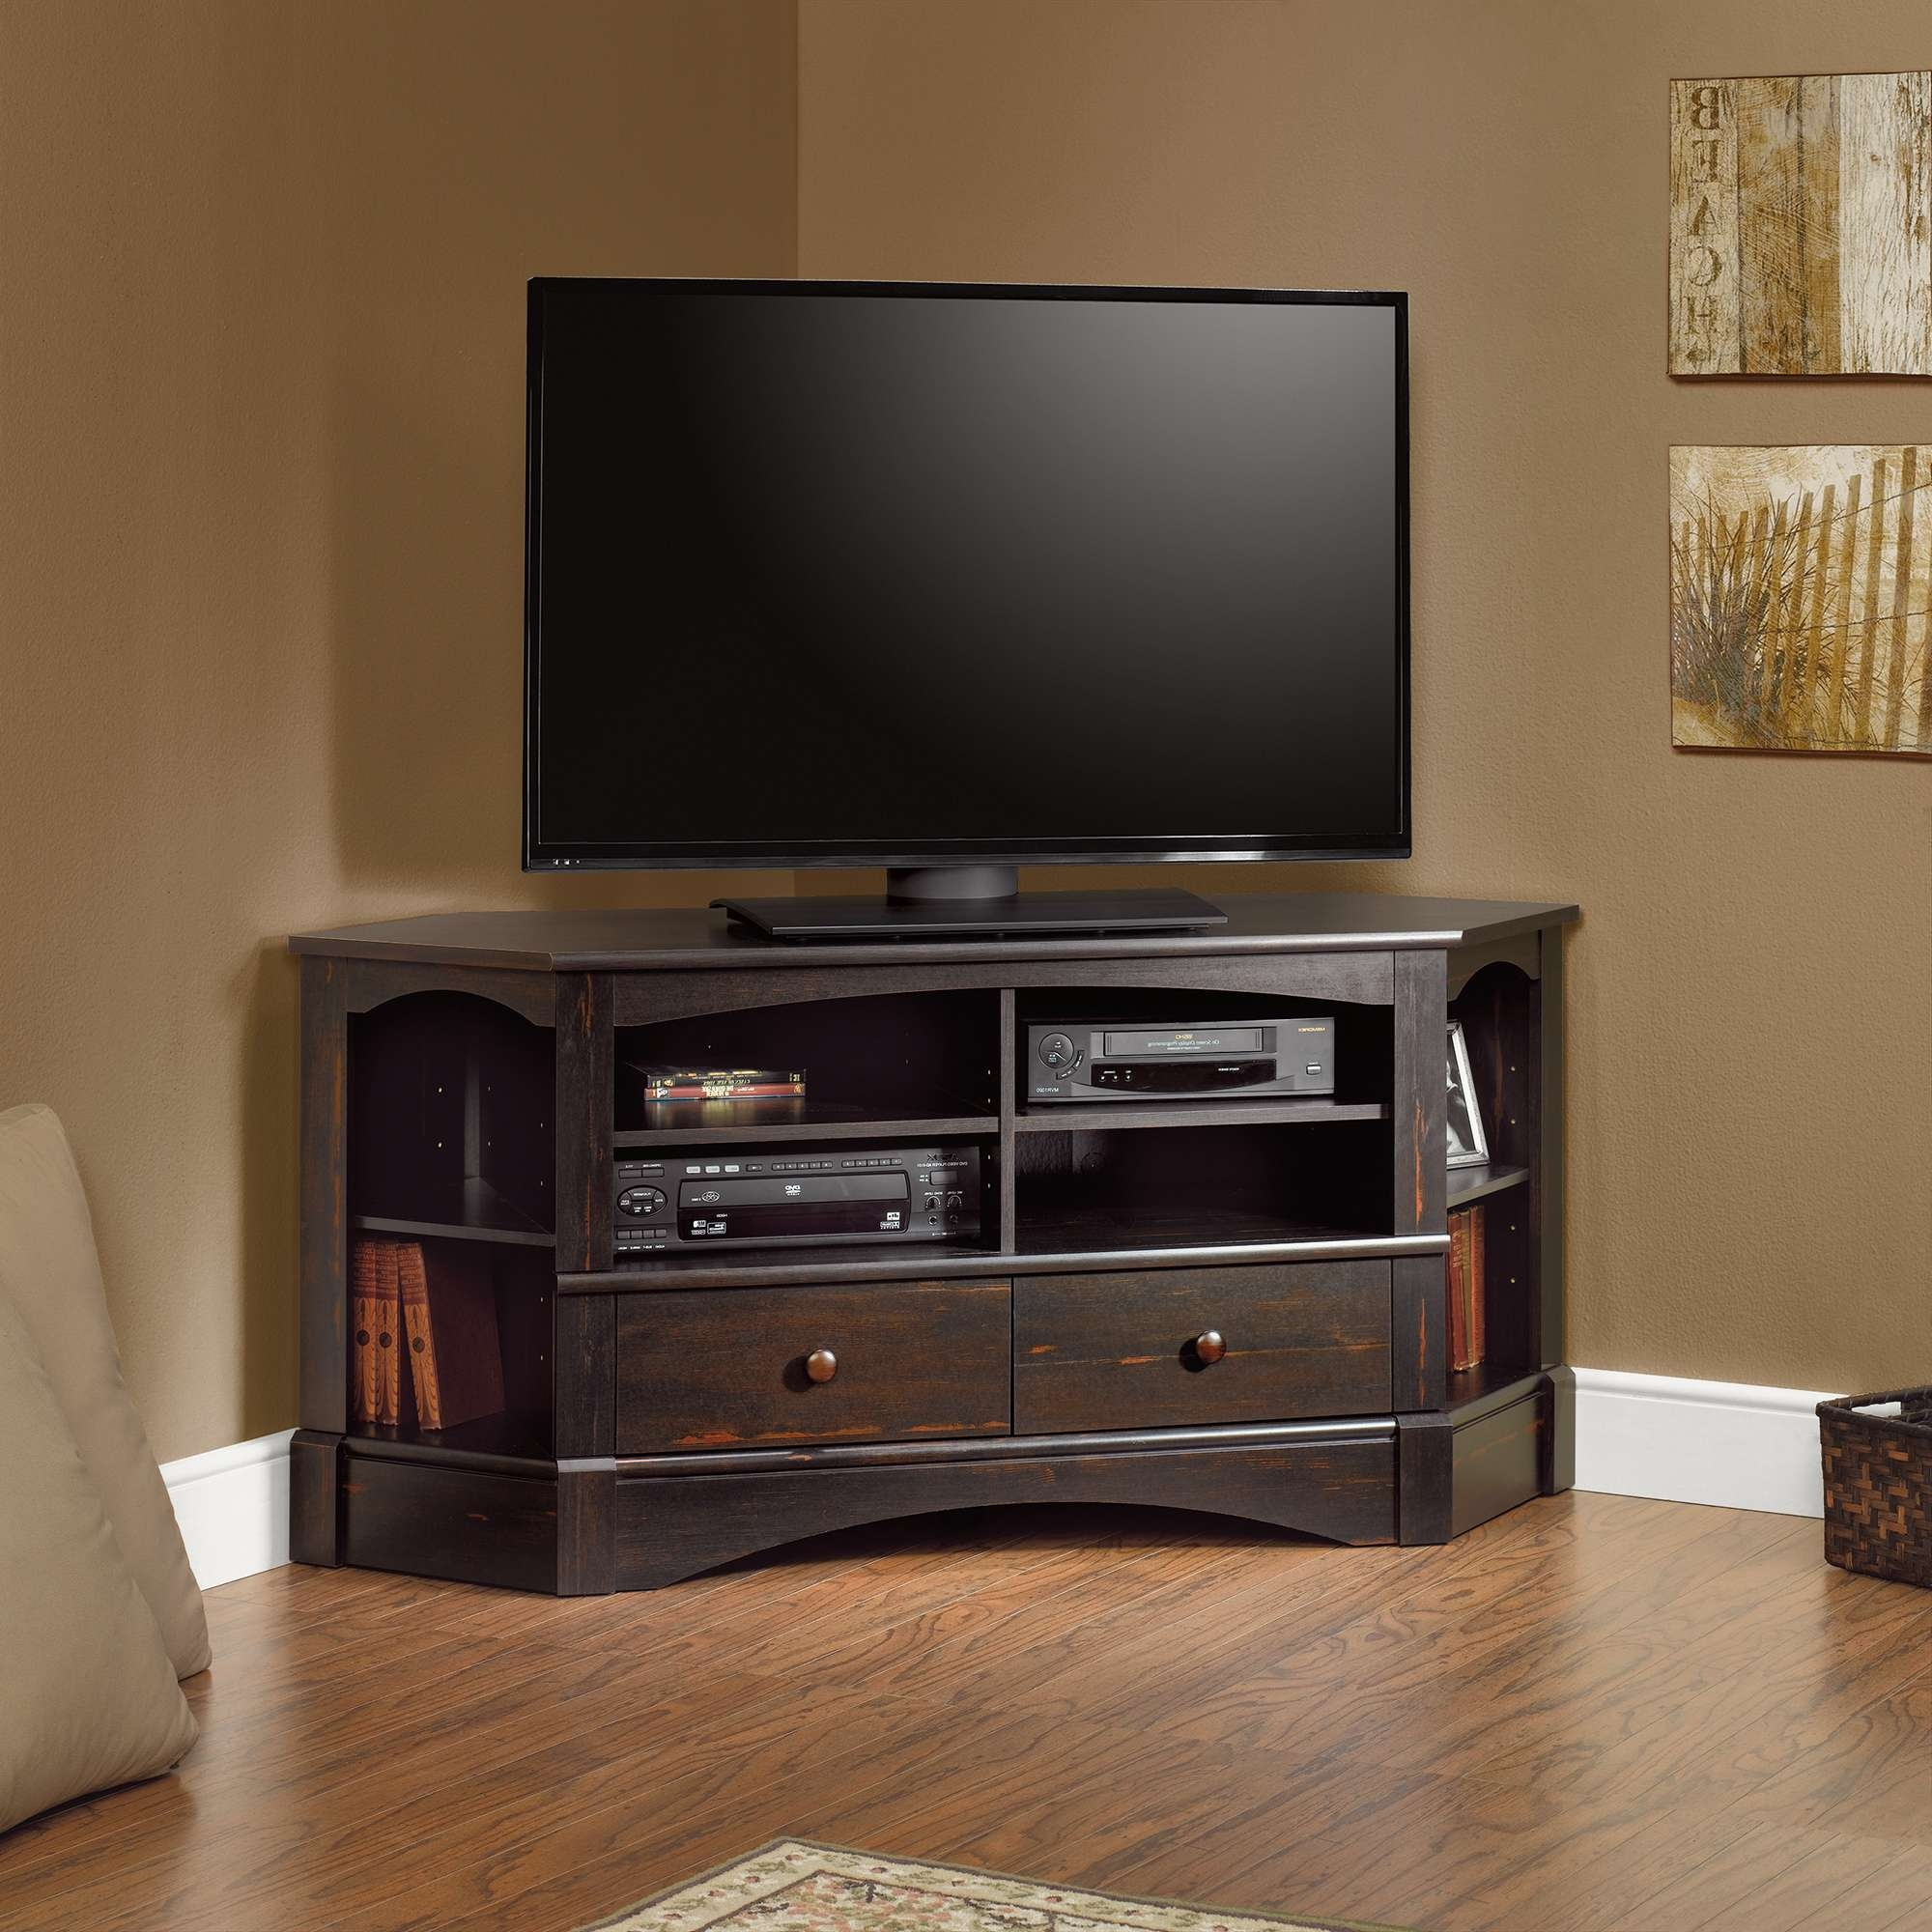 Fancy Matte Varnished Dark Oak Wood Tall Corner Tv Stand For Pertaining To Fancy Tv Cabinets (View 8 of 20)